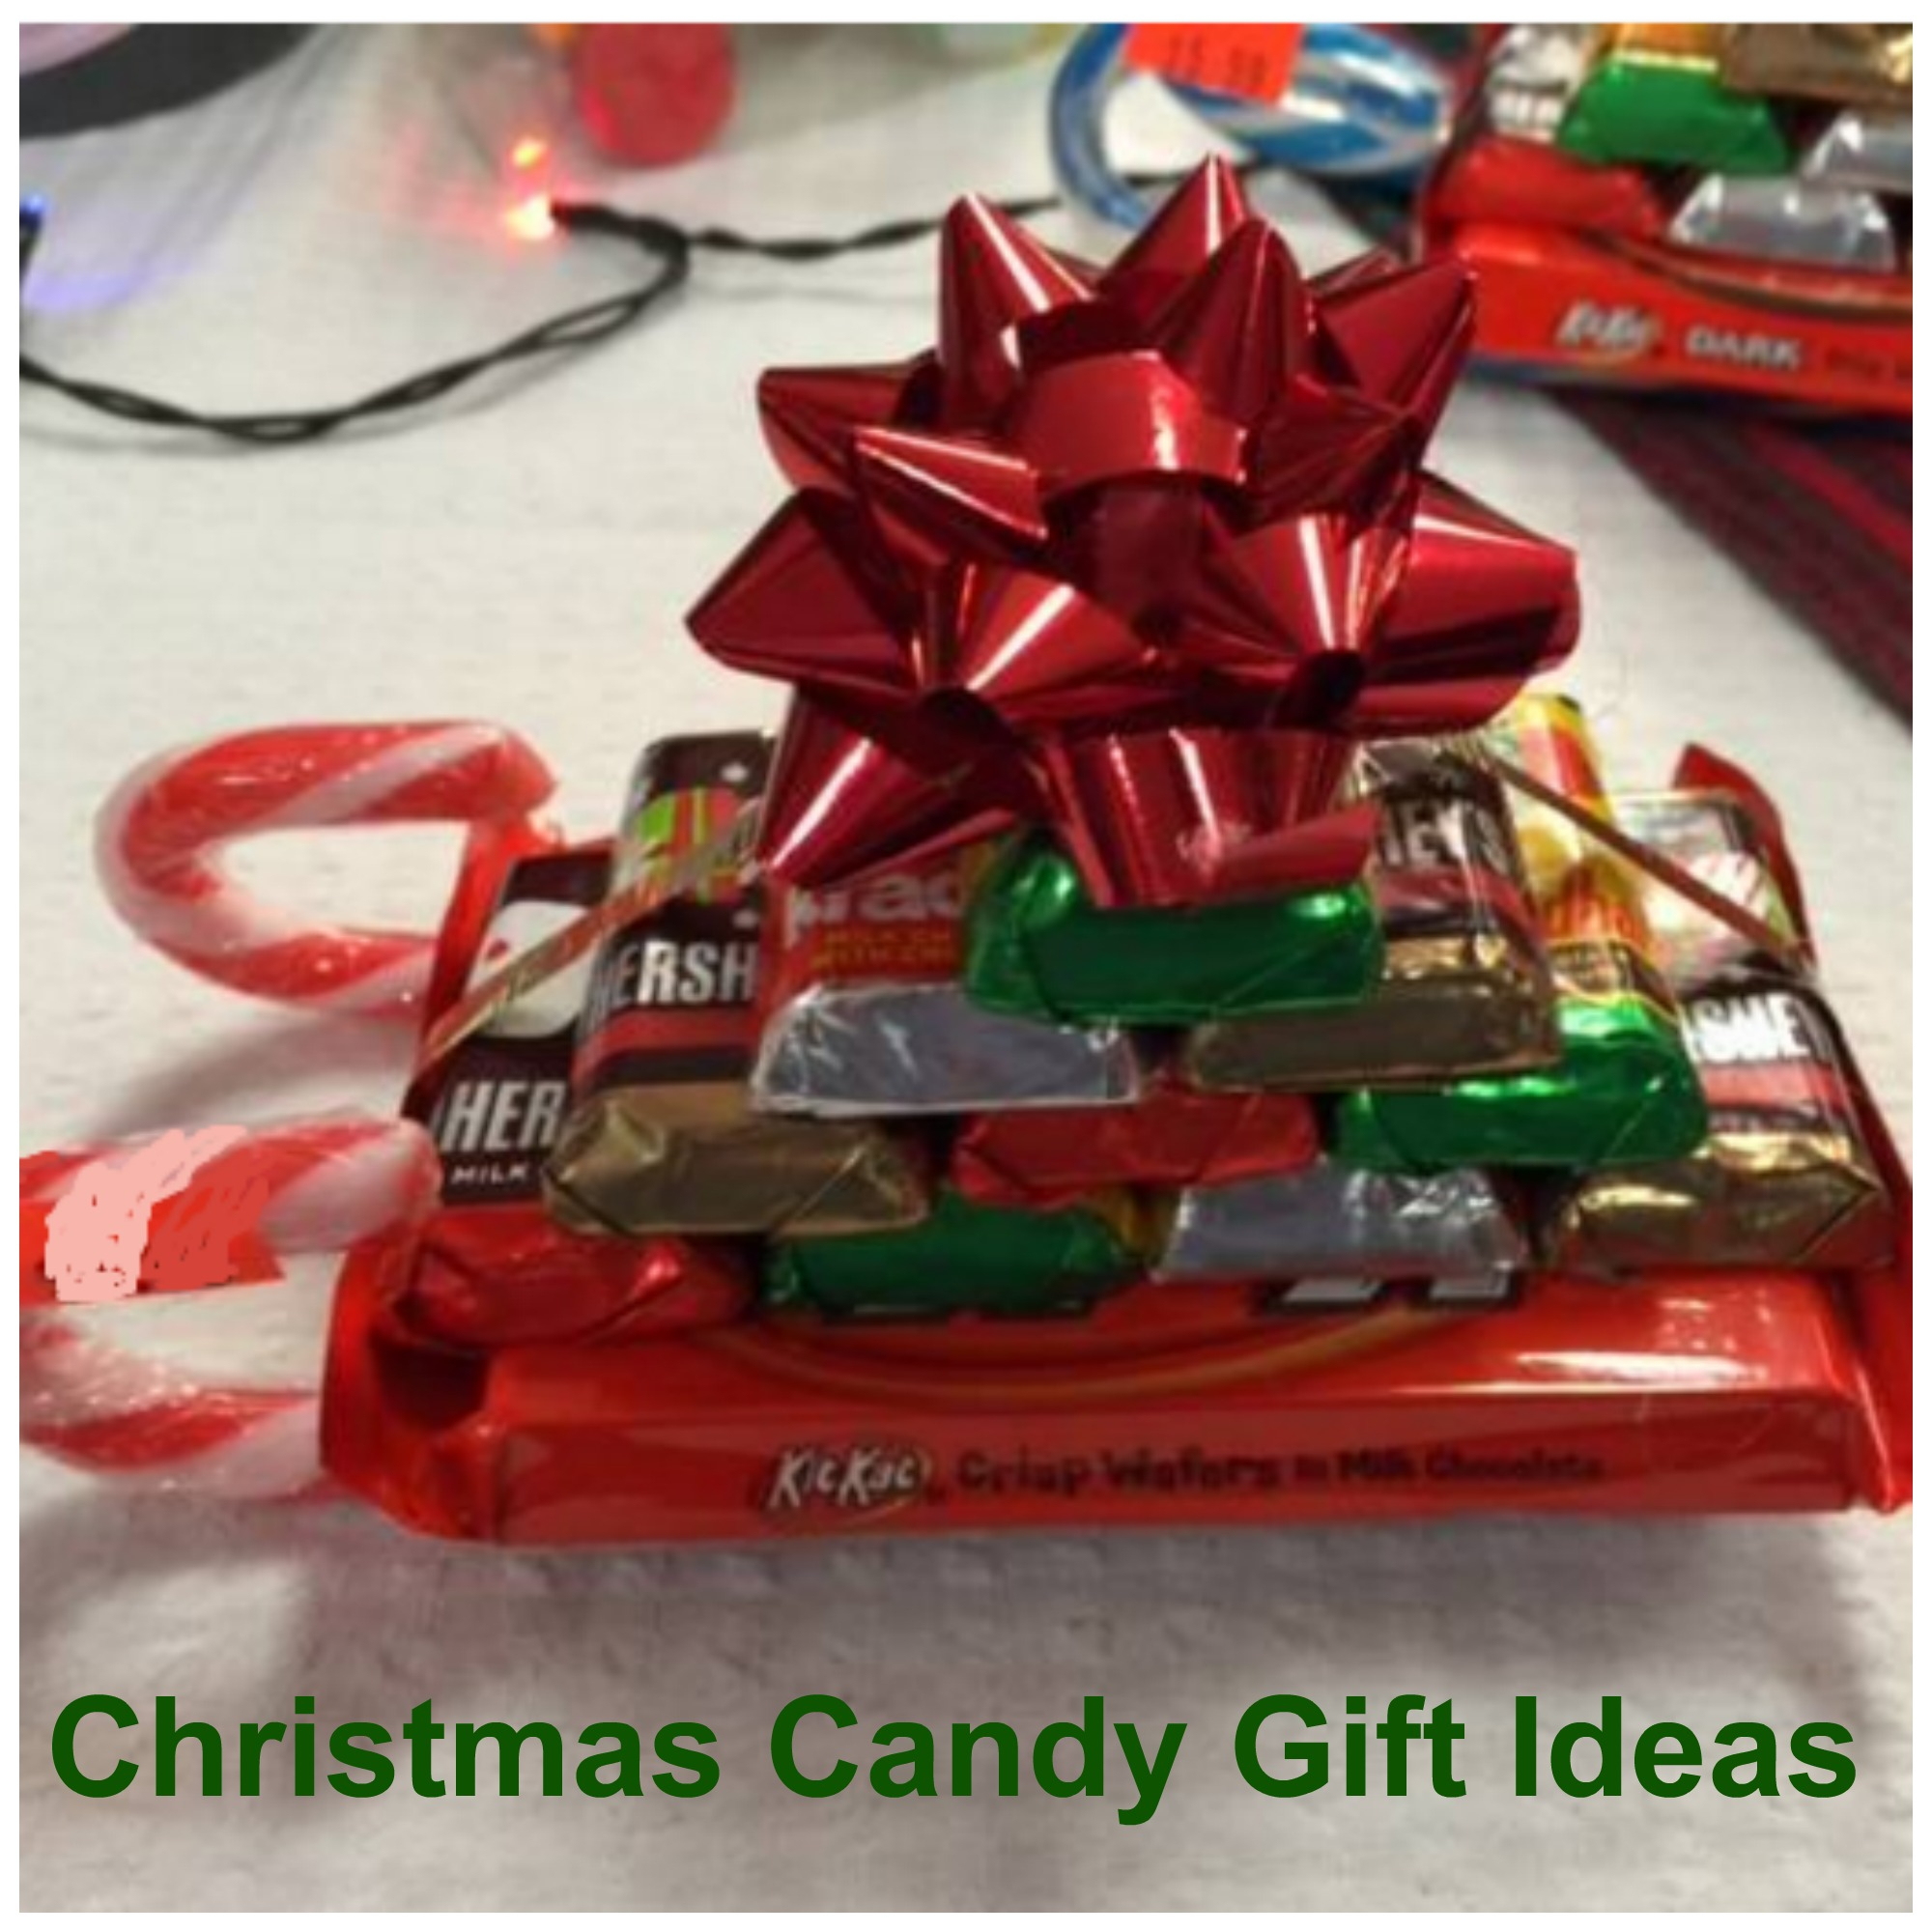 10 Stylish Candy Gift Ideas For Christmas christmas candy gift ideas family finds fun